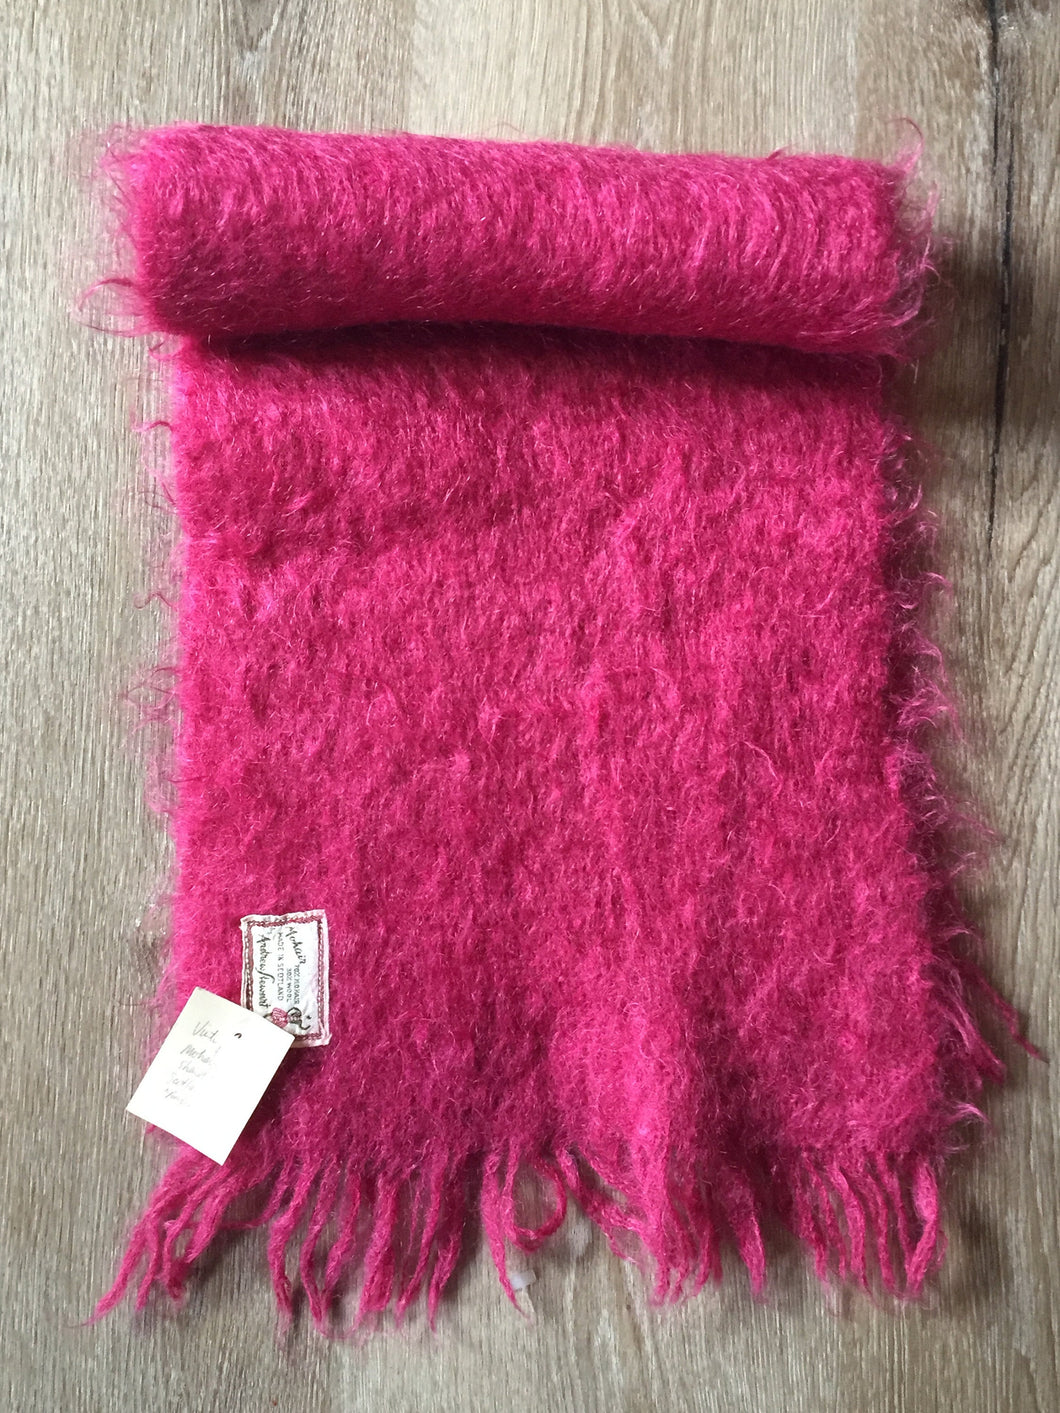 Kingspier Vintage - Vintage hot pink mohair shawl-scarf, made in Scotland by